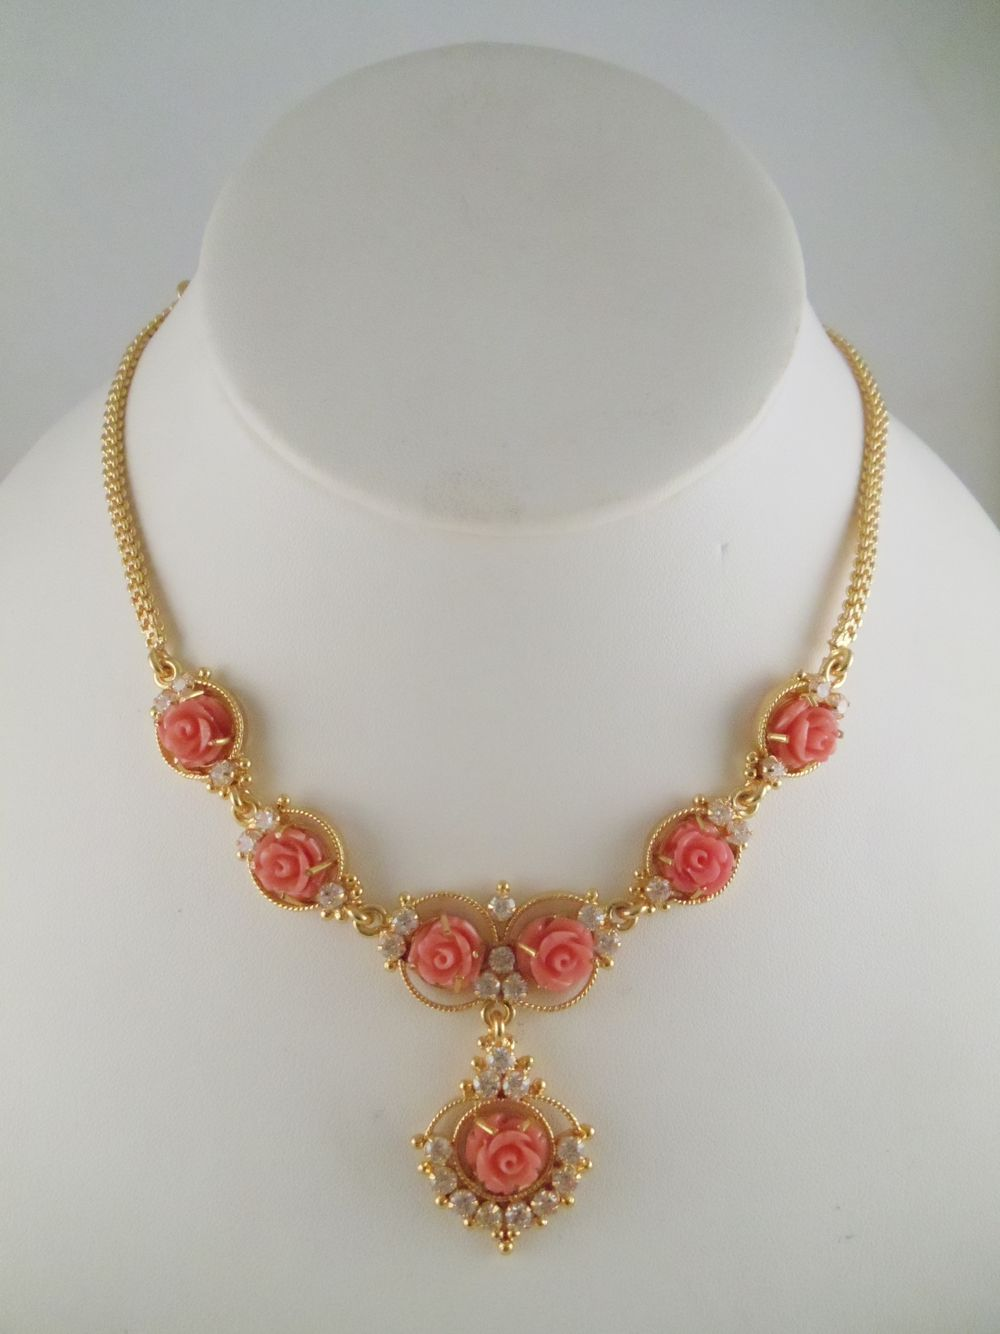 Coral Roses Gold Jewelry Fashion Jewelry Design Earrings Beautiful Gold Necklaces